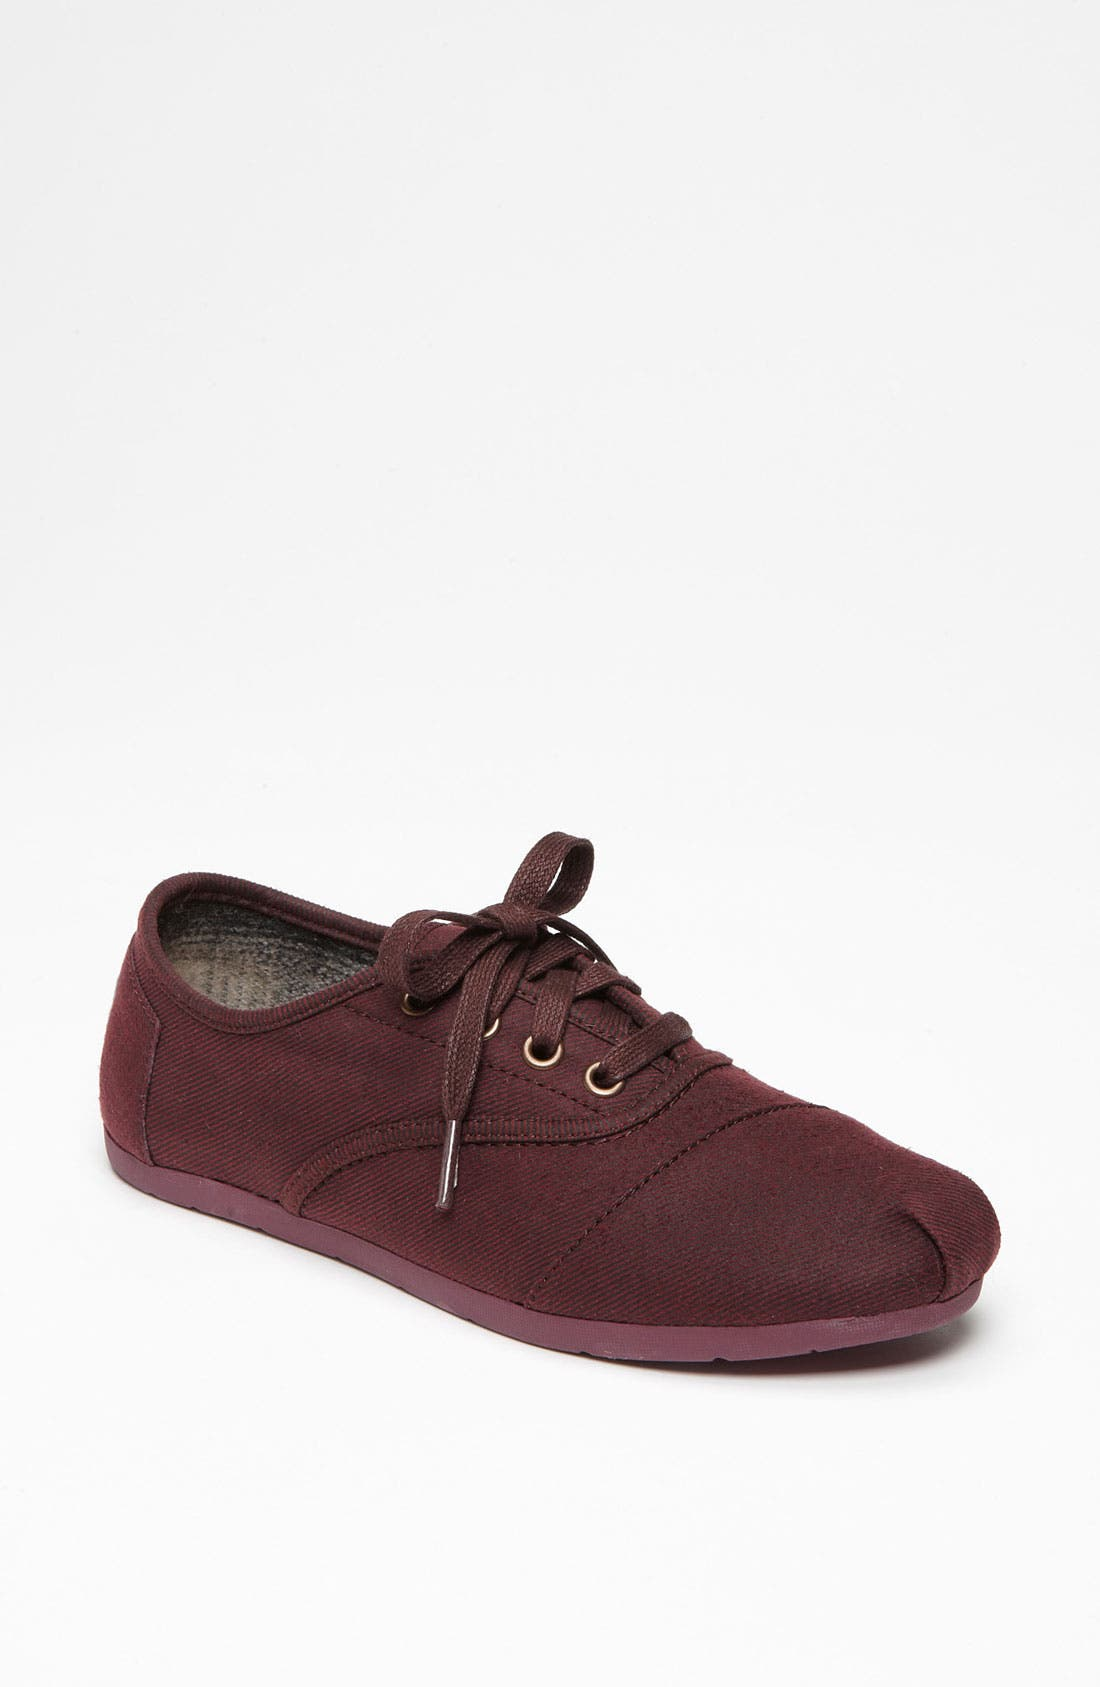 Alternate Image 1 Selected - TOMS 'Cordones - Colton' Sneaker (Women)